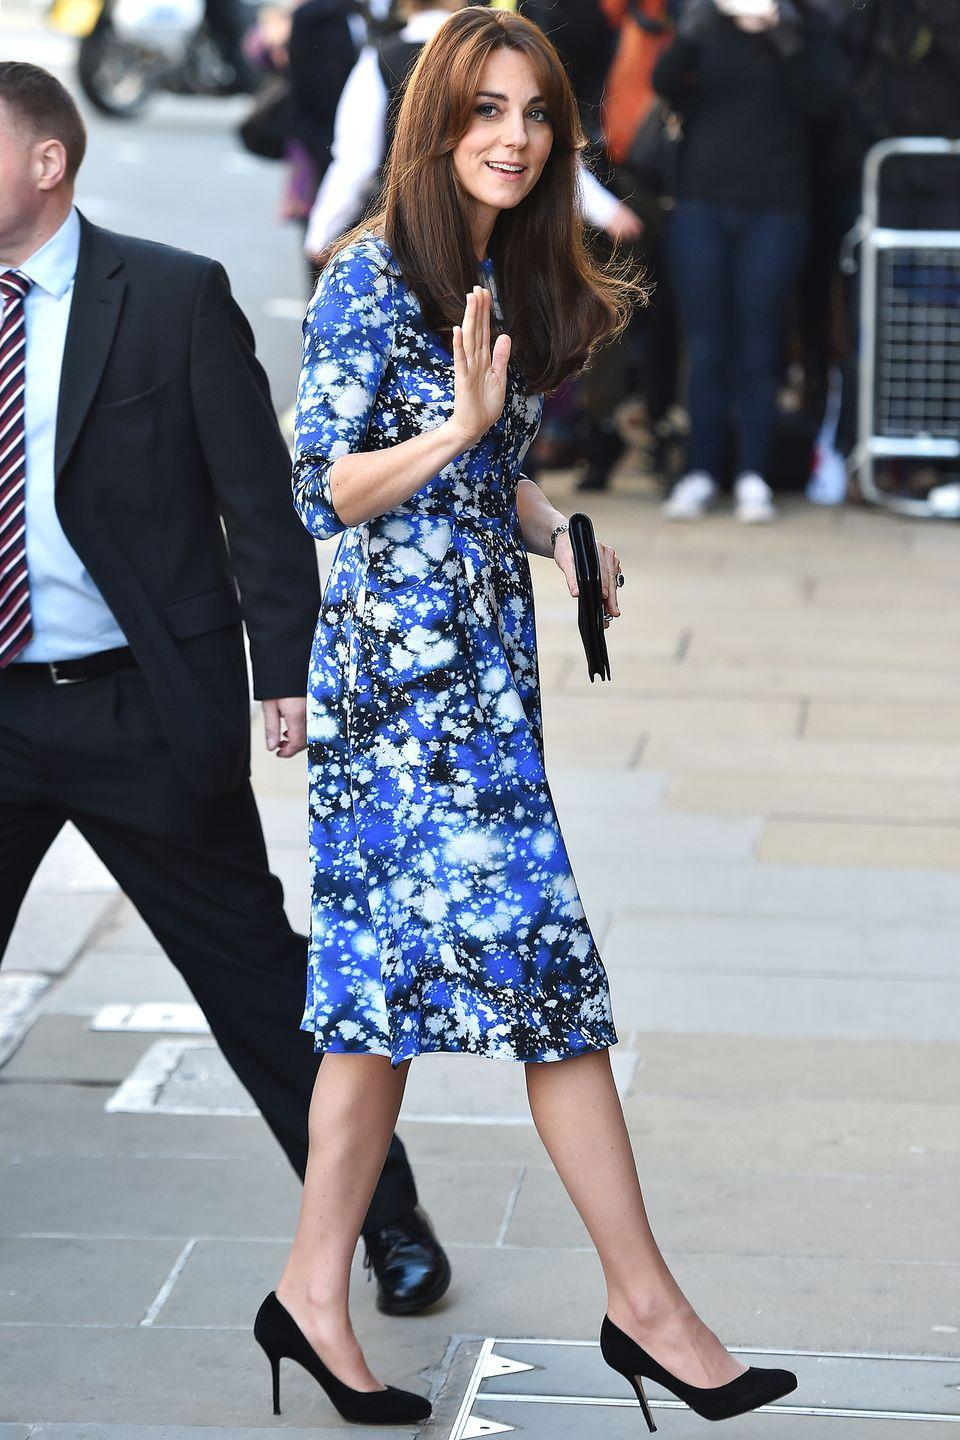 <p>The Duchess of Cambridge attends a movie premiere in a Tabitha Webb dress.</p>